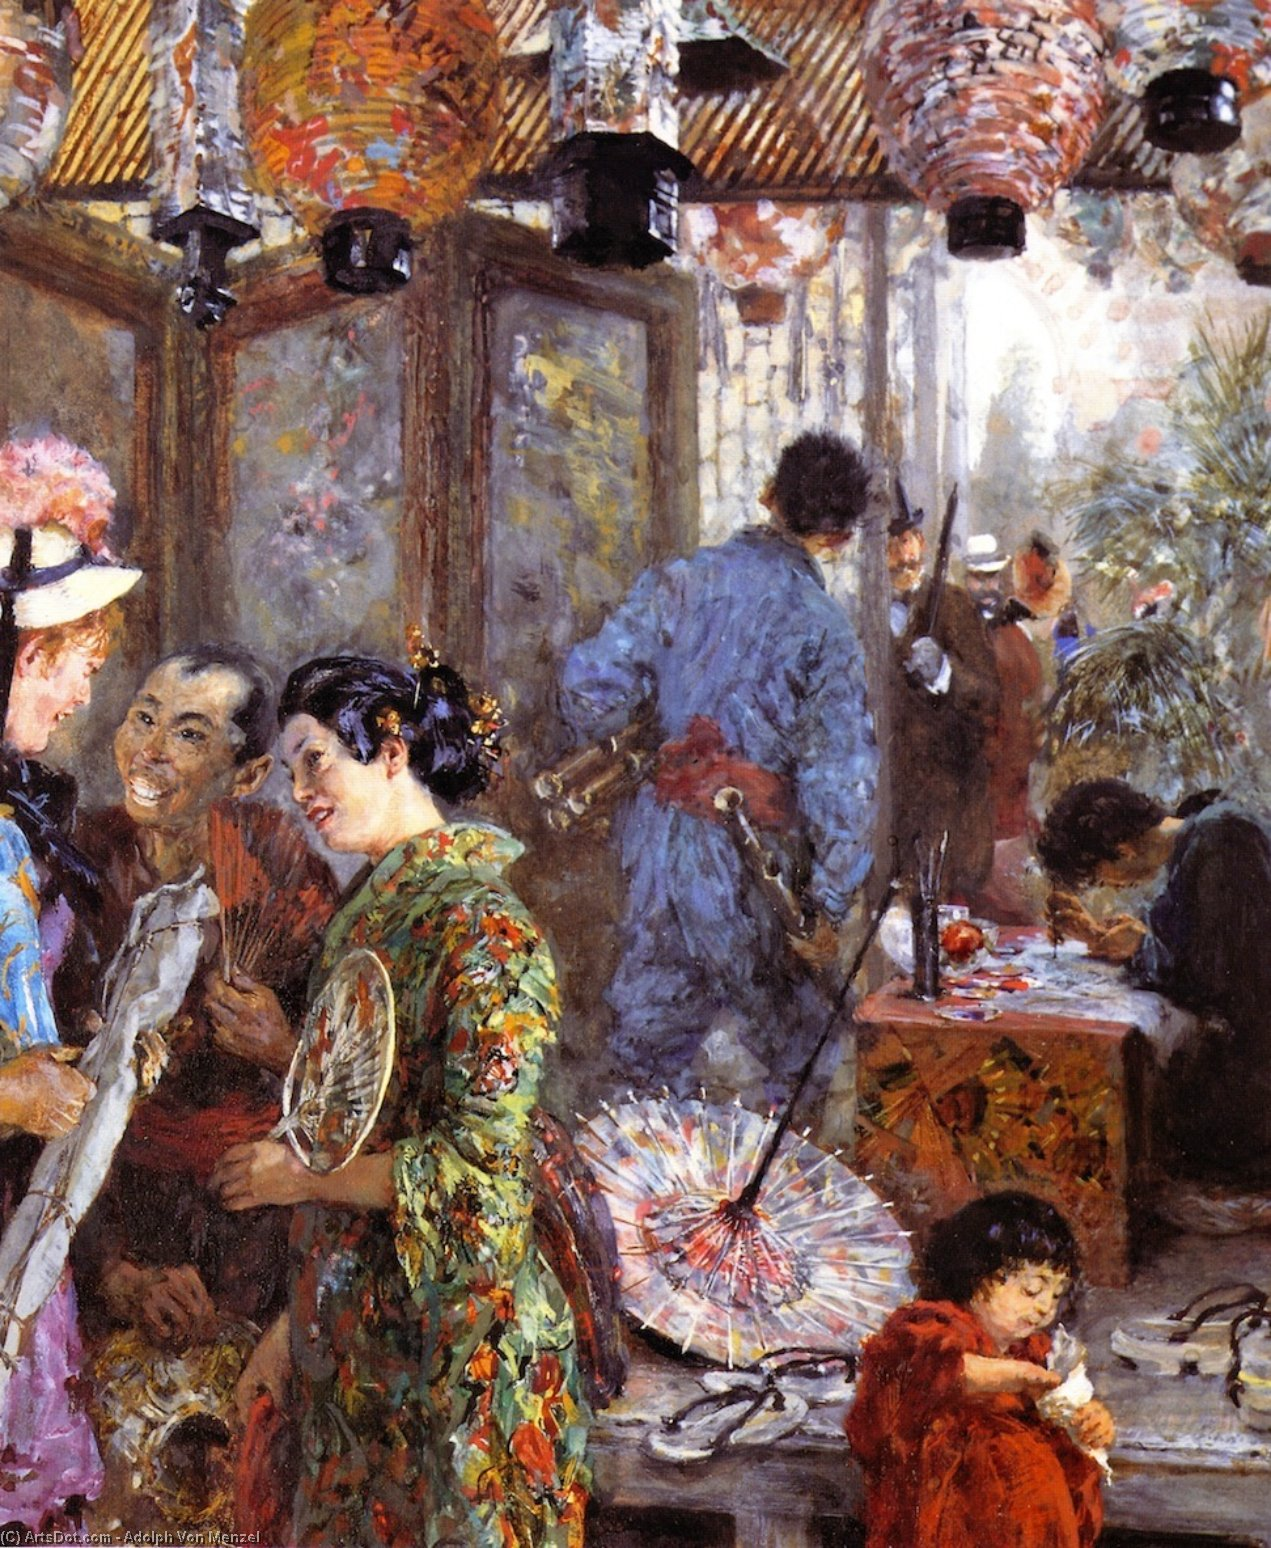 Japanese Painter (also known as At the Japanese Exhibition), Frescoes by Adolph Menzel (1815-1905, Poland)